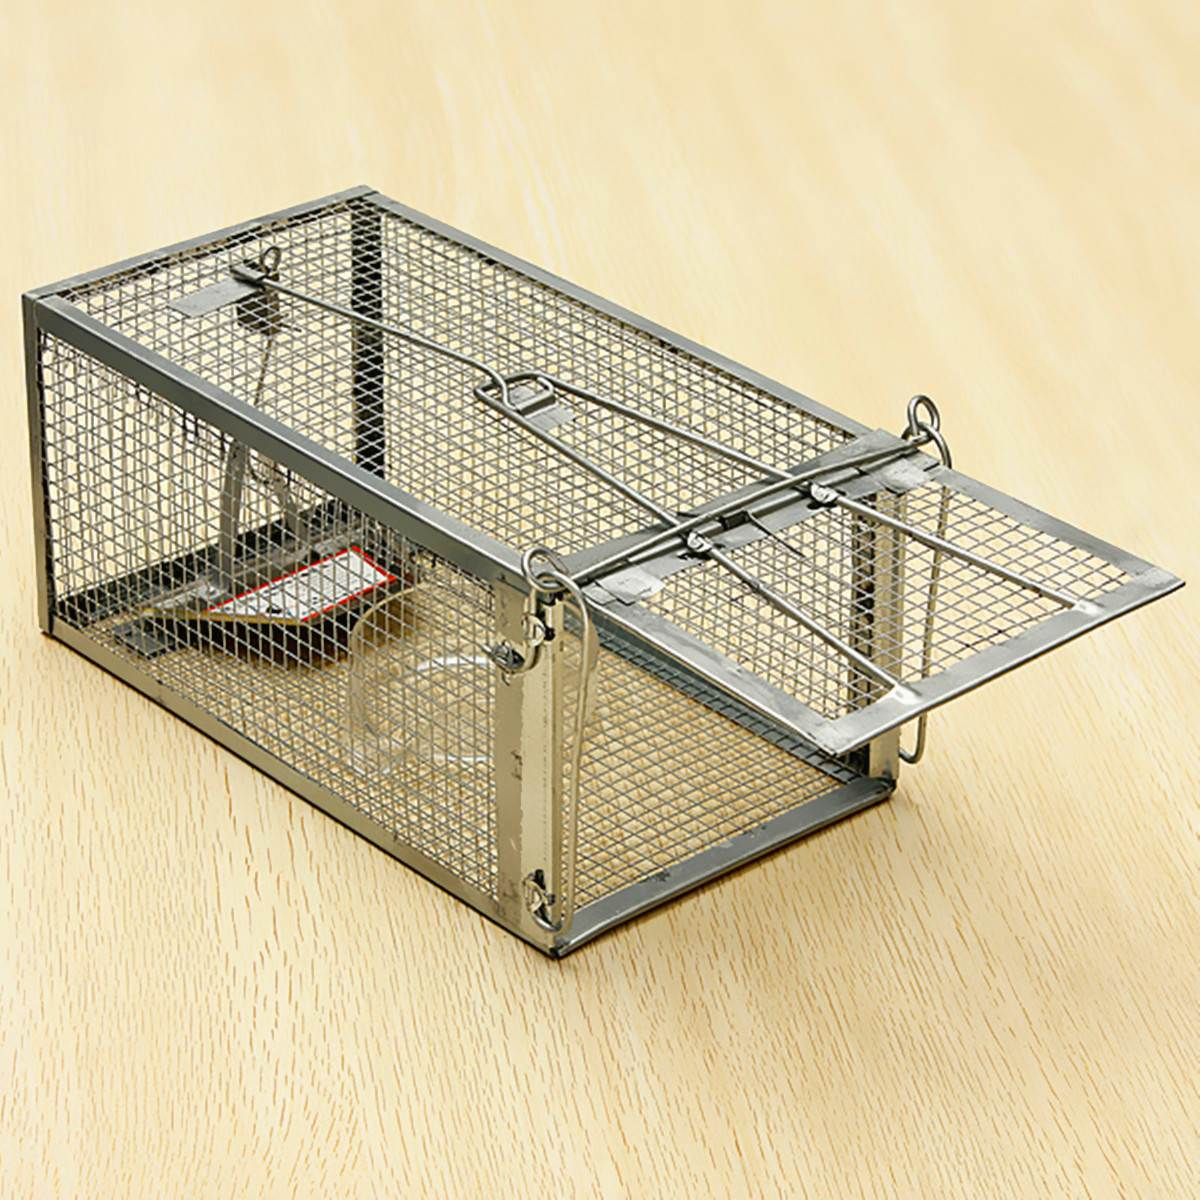 ᗗreusable hamster cage mice ᐂ rat control catch bait